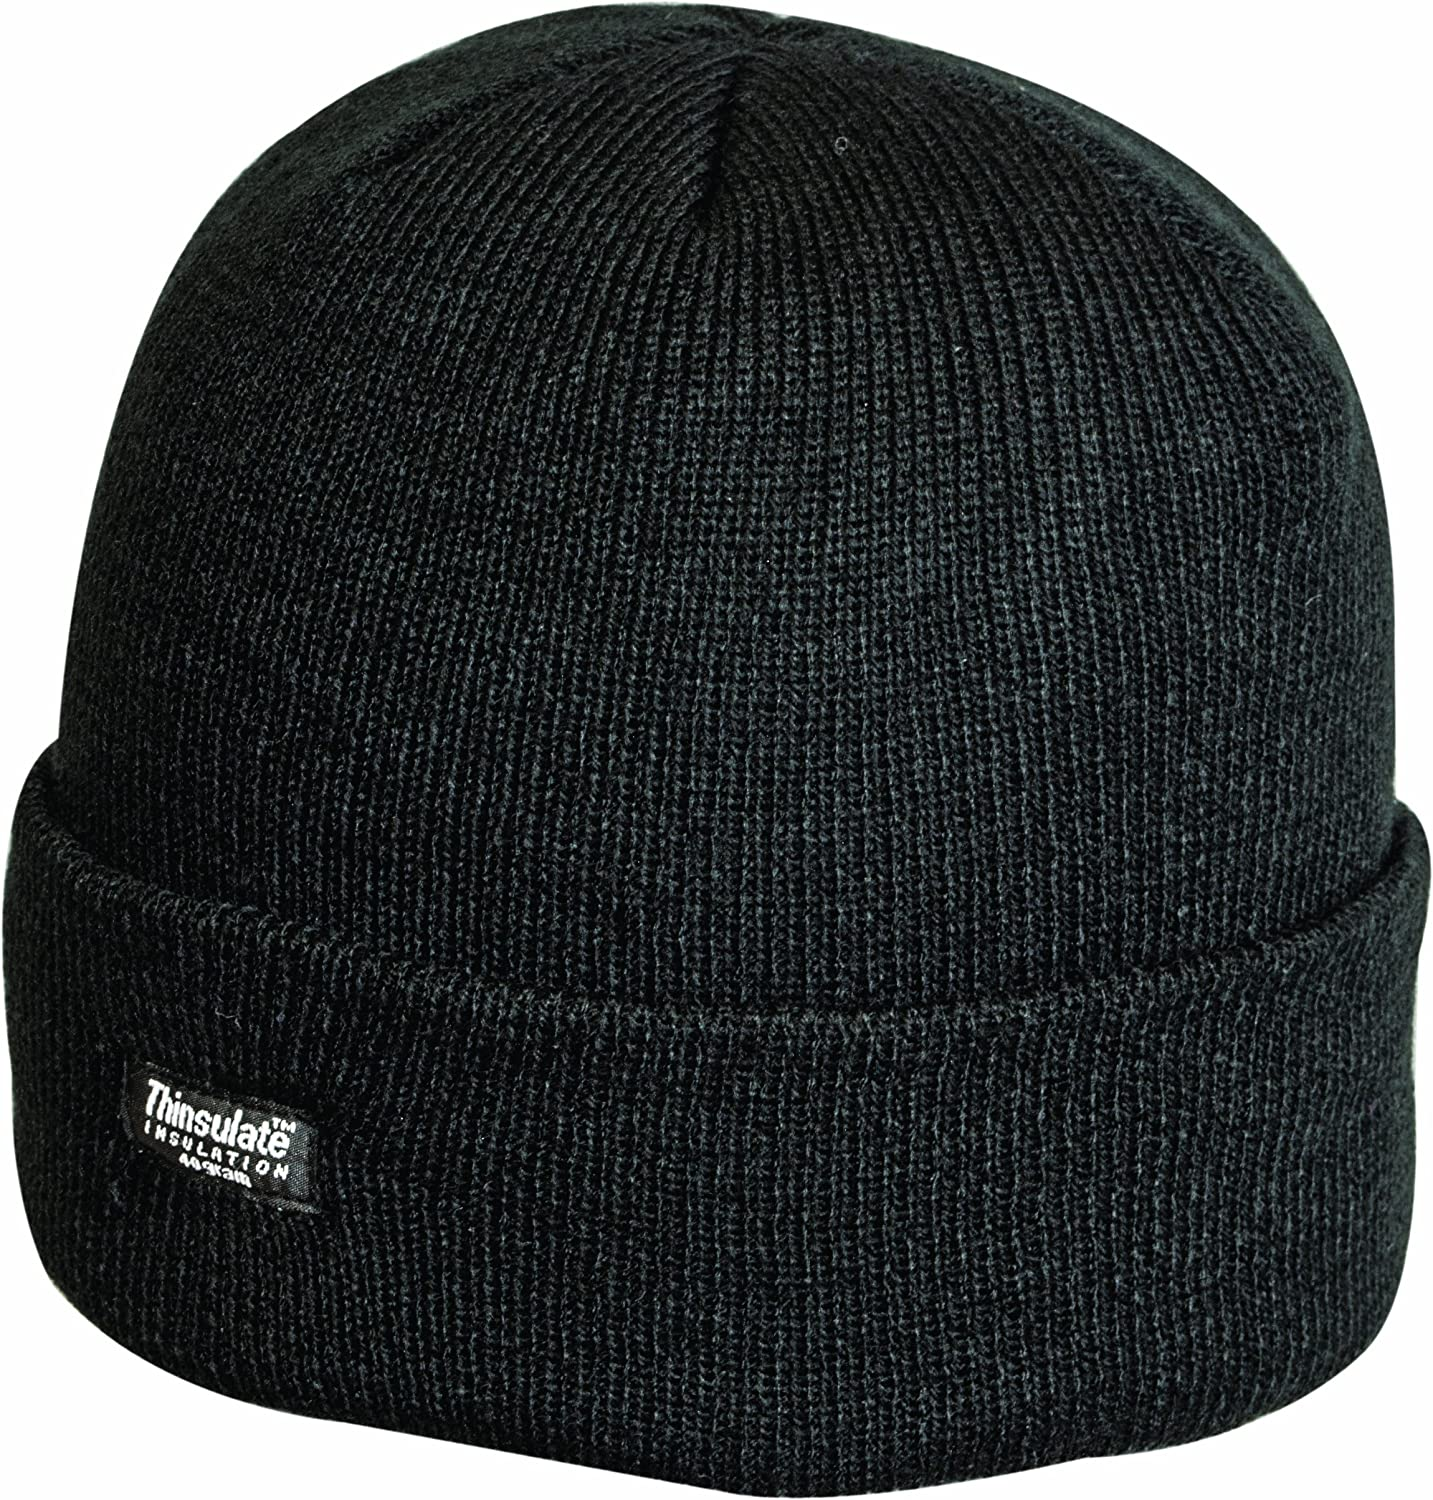 Louise23 Mens Outdoor Turn Up Extra Warm Thinsulate Lined Winter Fleece Beanie Ski Hat Fishing Walking Hiking Hat